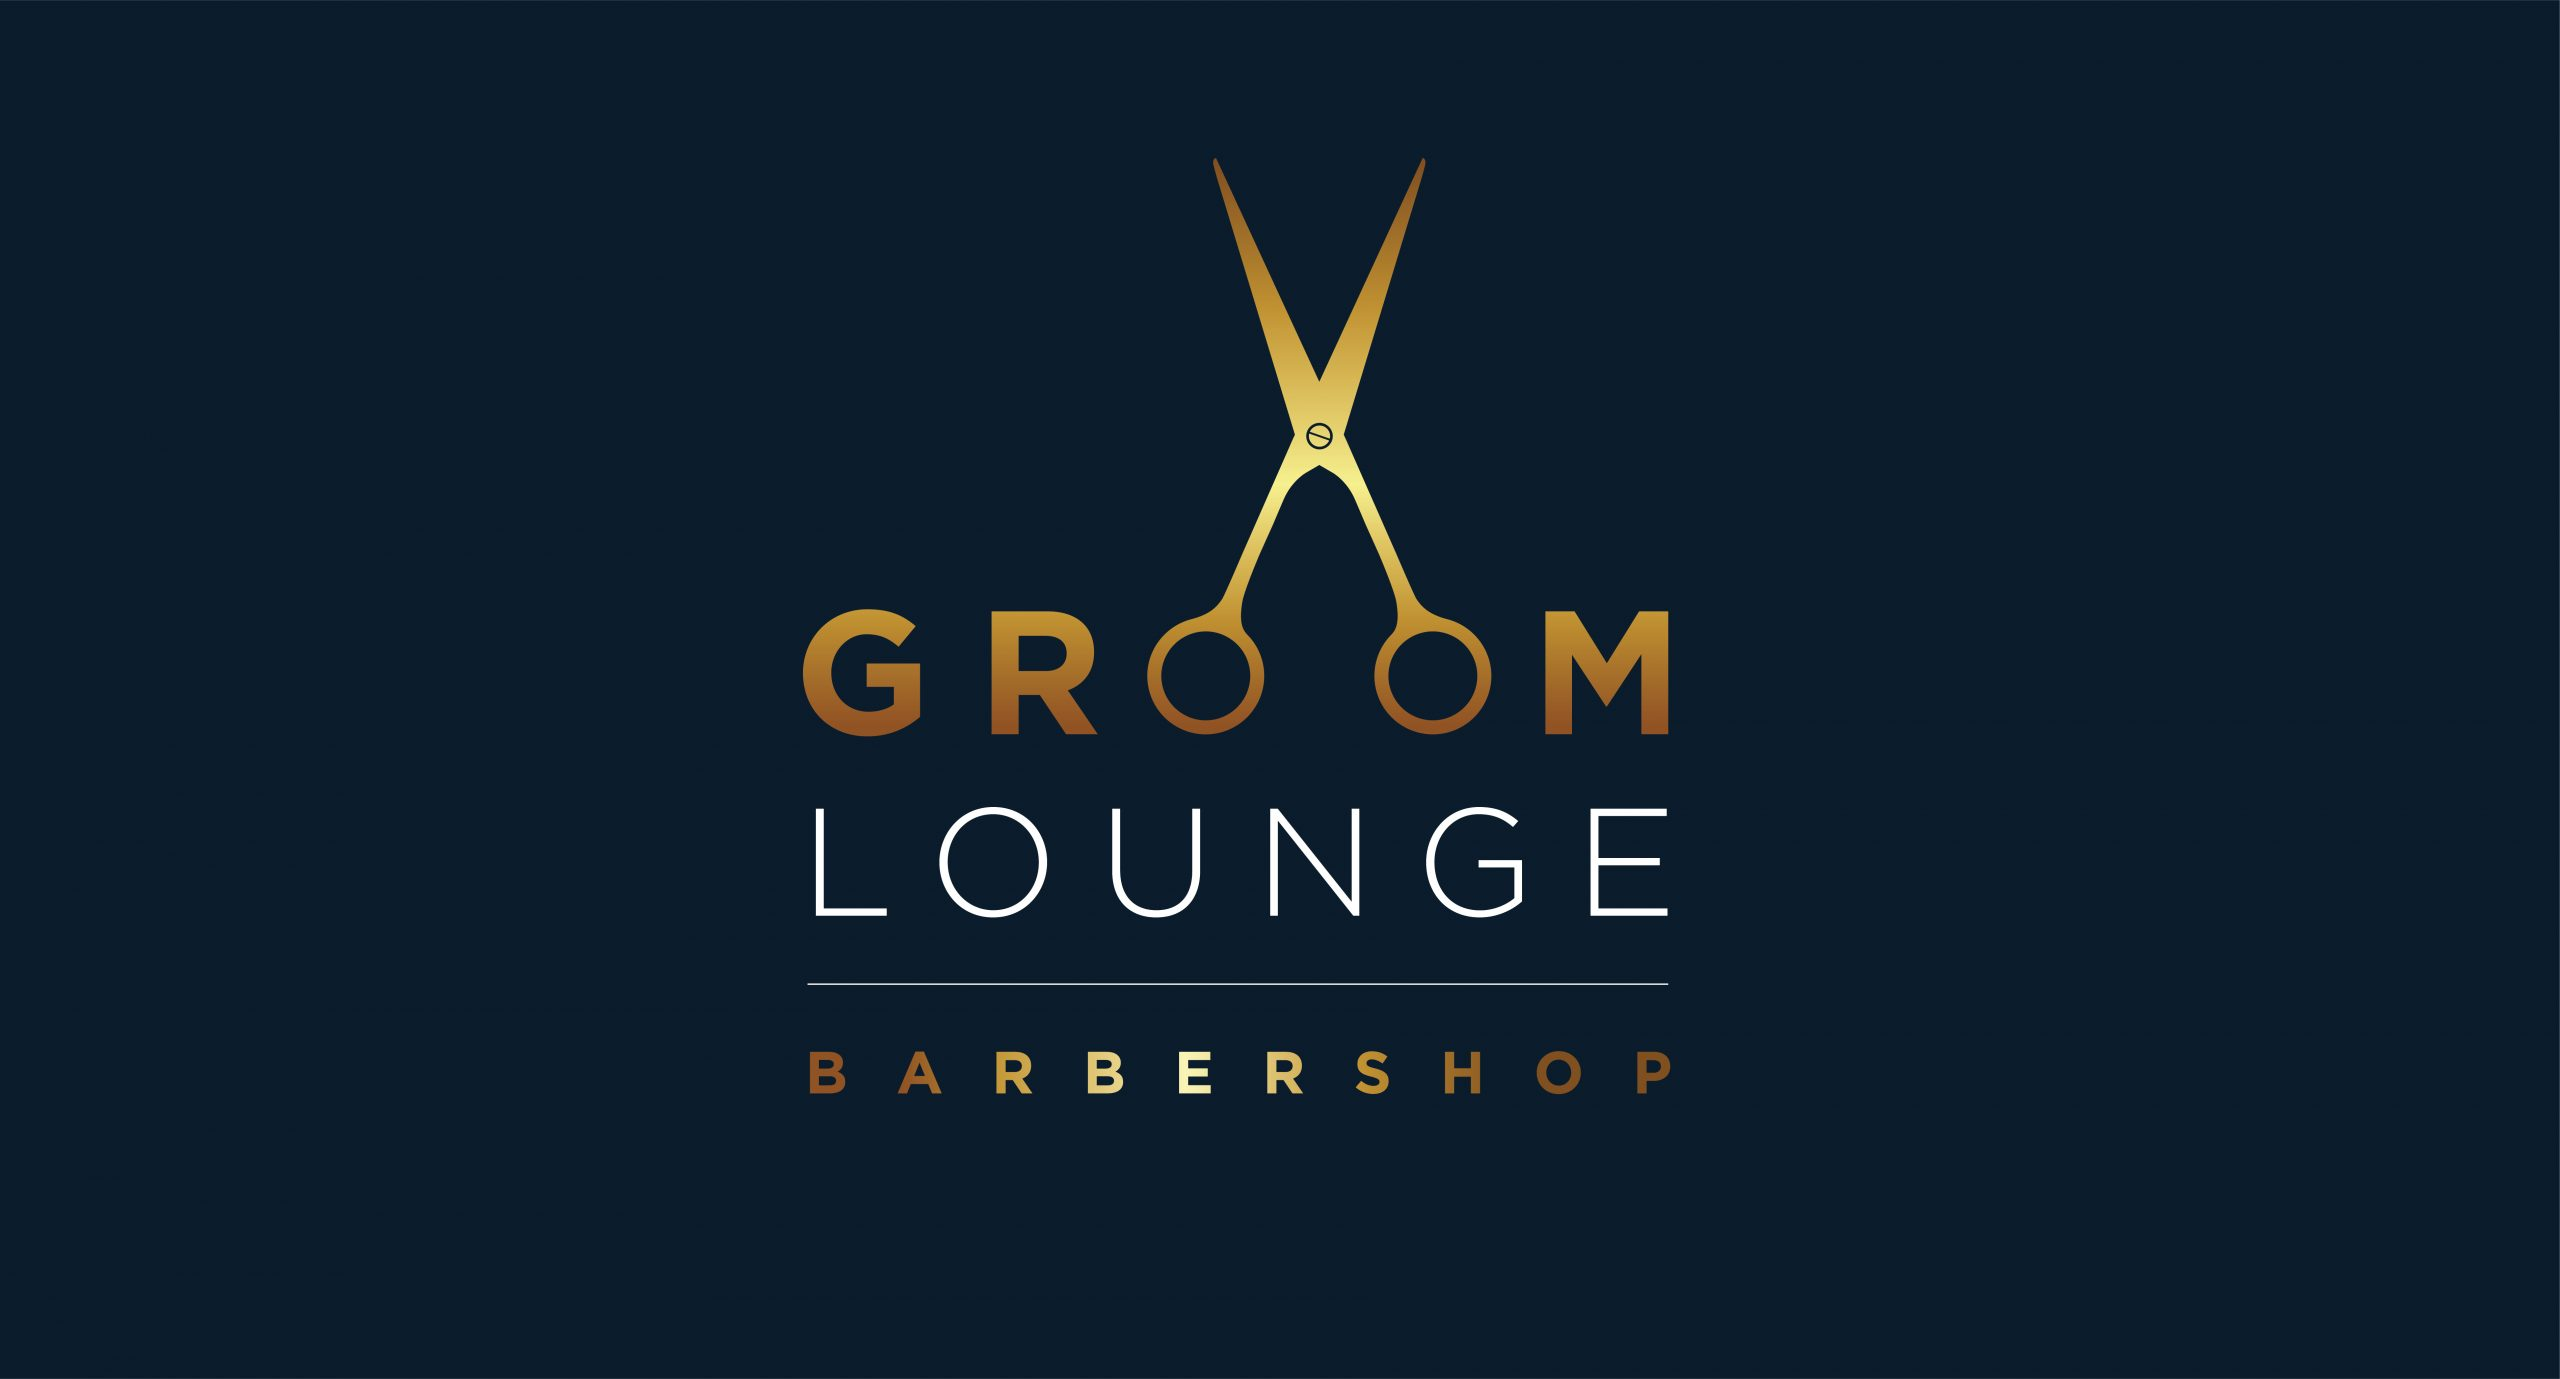 Groom Lounge